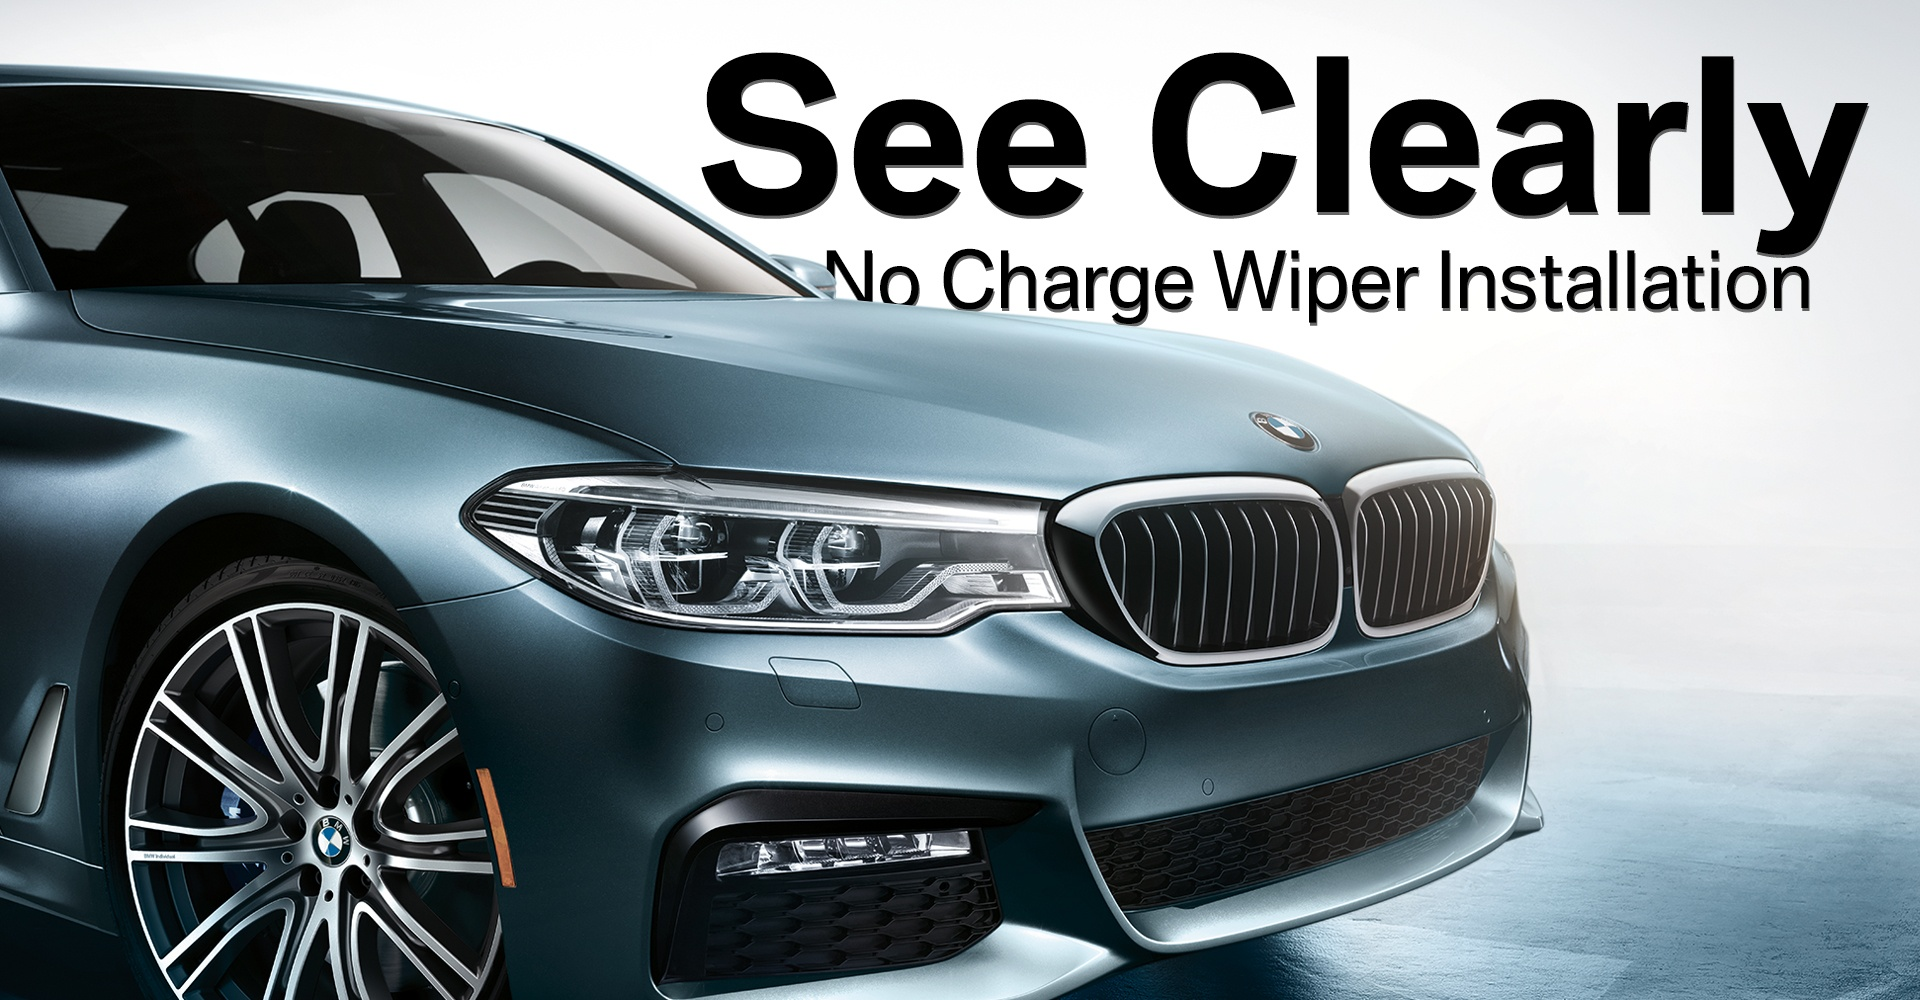 No Charge Wiper Installation